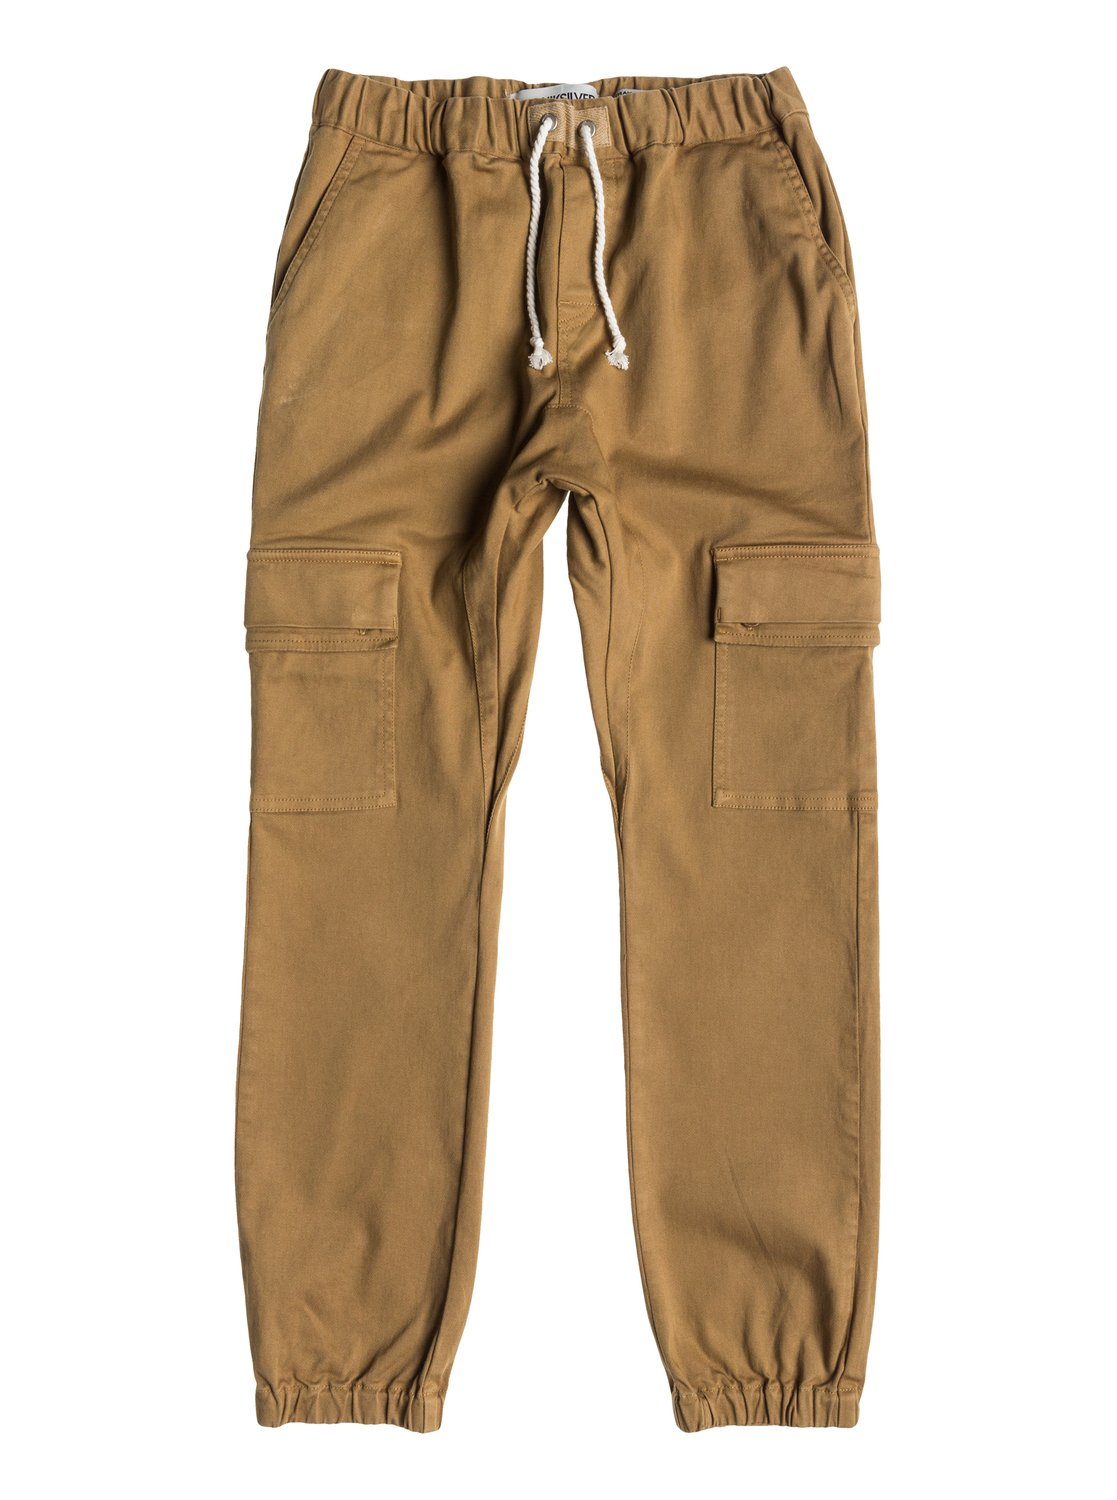 Drop Crotch Cargo Youth - Quiksilver����� � ���������� ������ � ������ ������ ��� ��������� �� Quiksilver � ������� �� ��������� ����� 2015. ��������������: ���������� ��������� �������, ���������� ����� �� ������, ������ ���� � ���� ���������� � ���� ���������.<br>